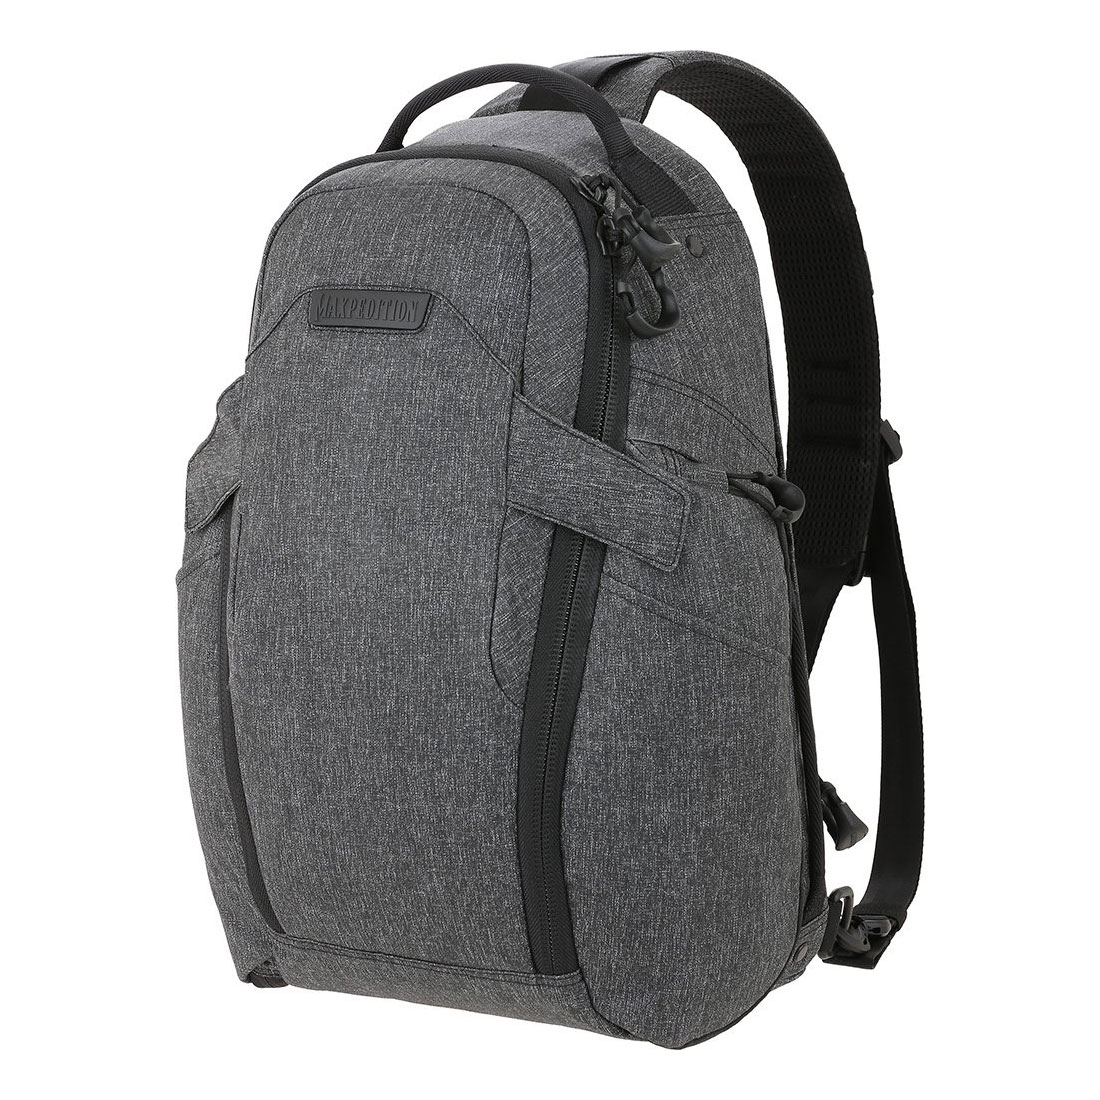 Maxpedition Entity 16 Sling Pack